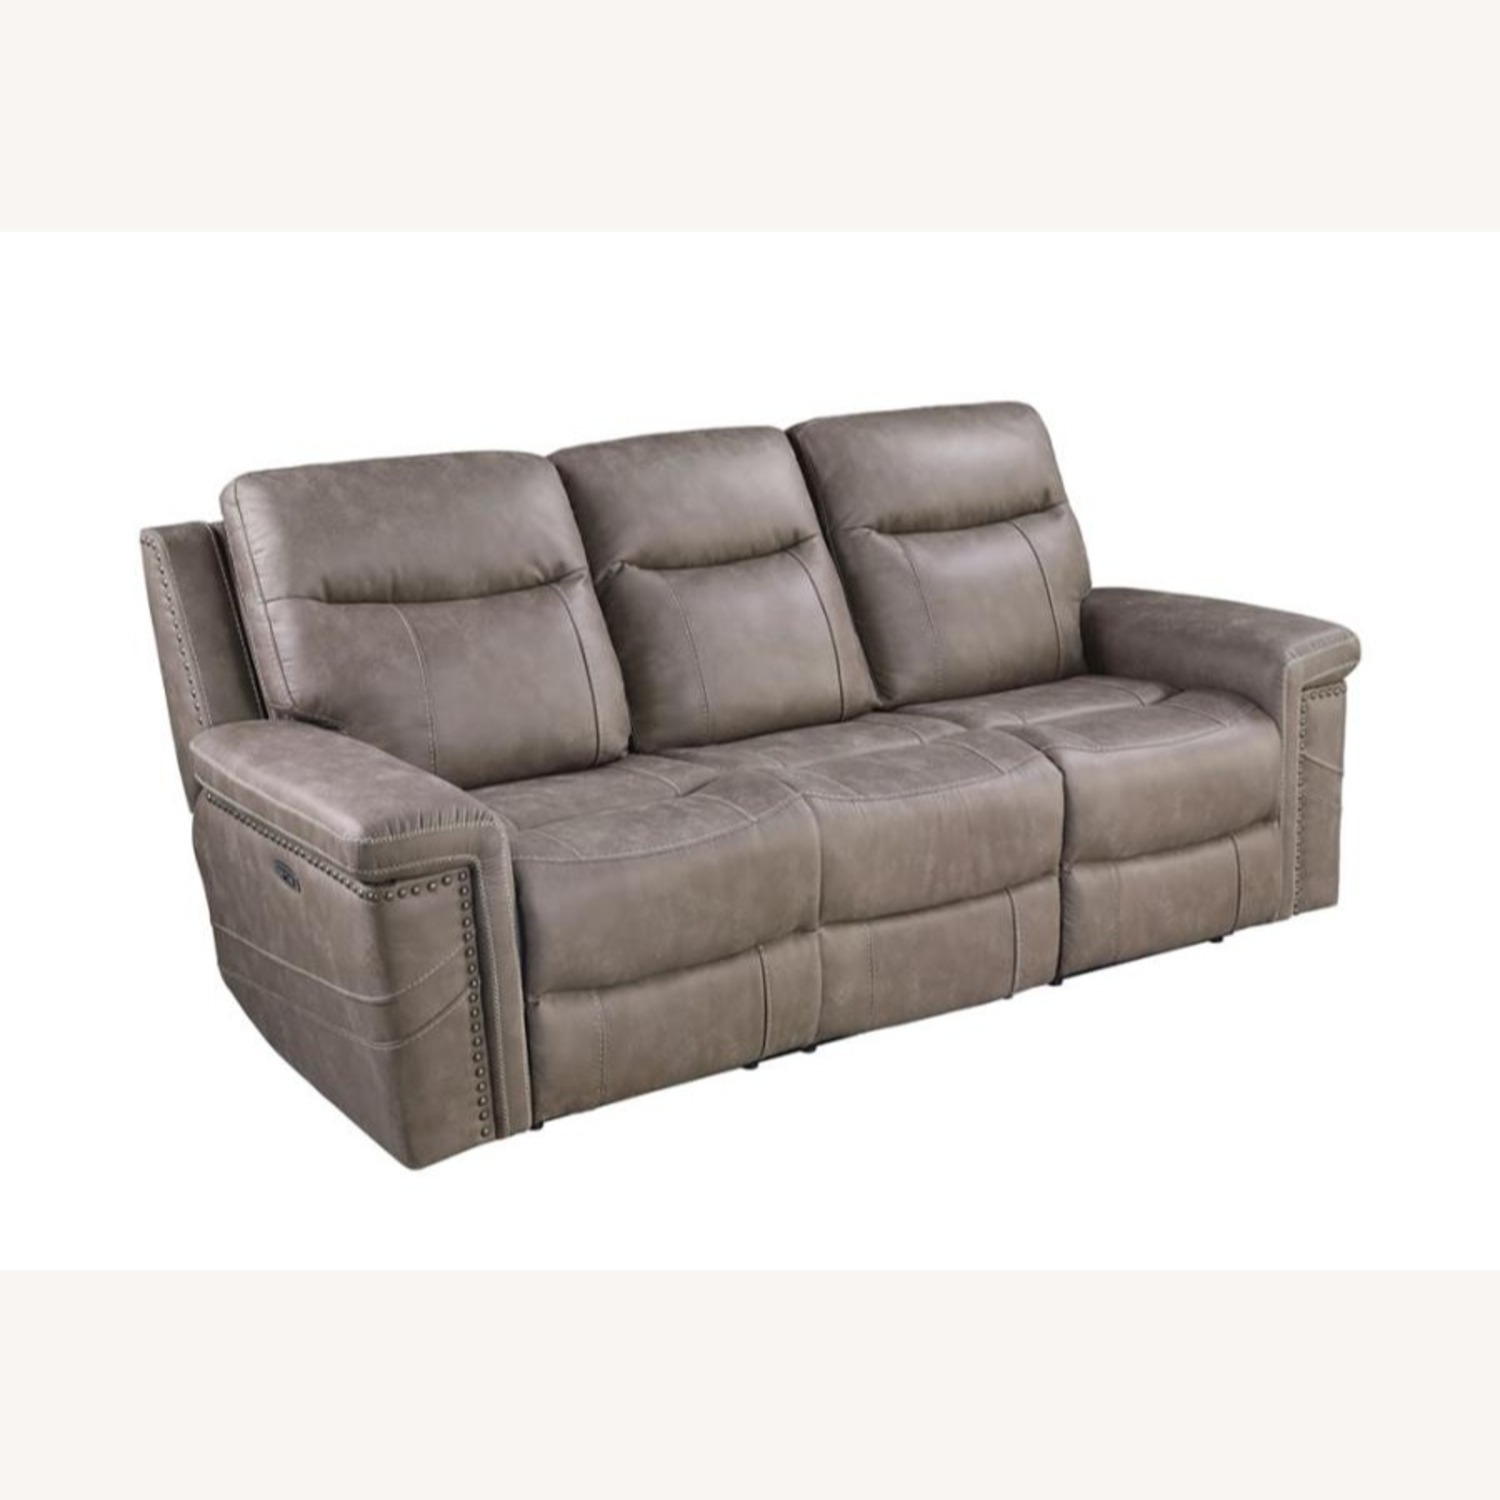 Power Sofa Recliner In Taupe Upholstery - image-0